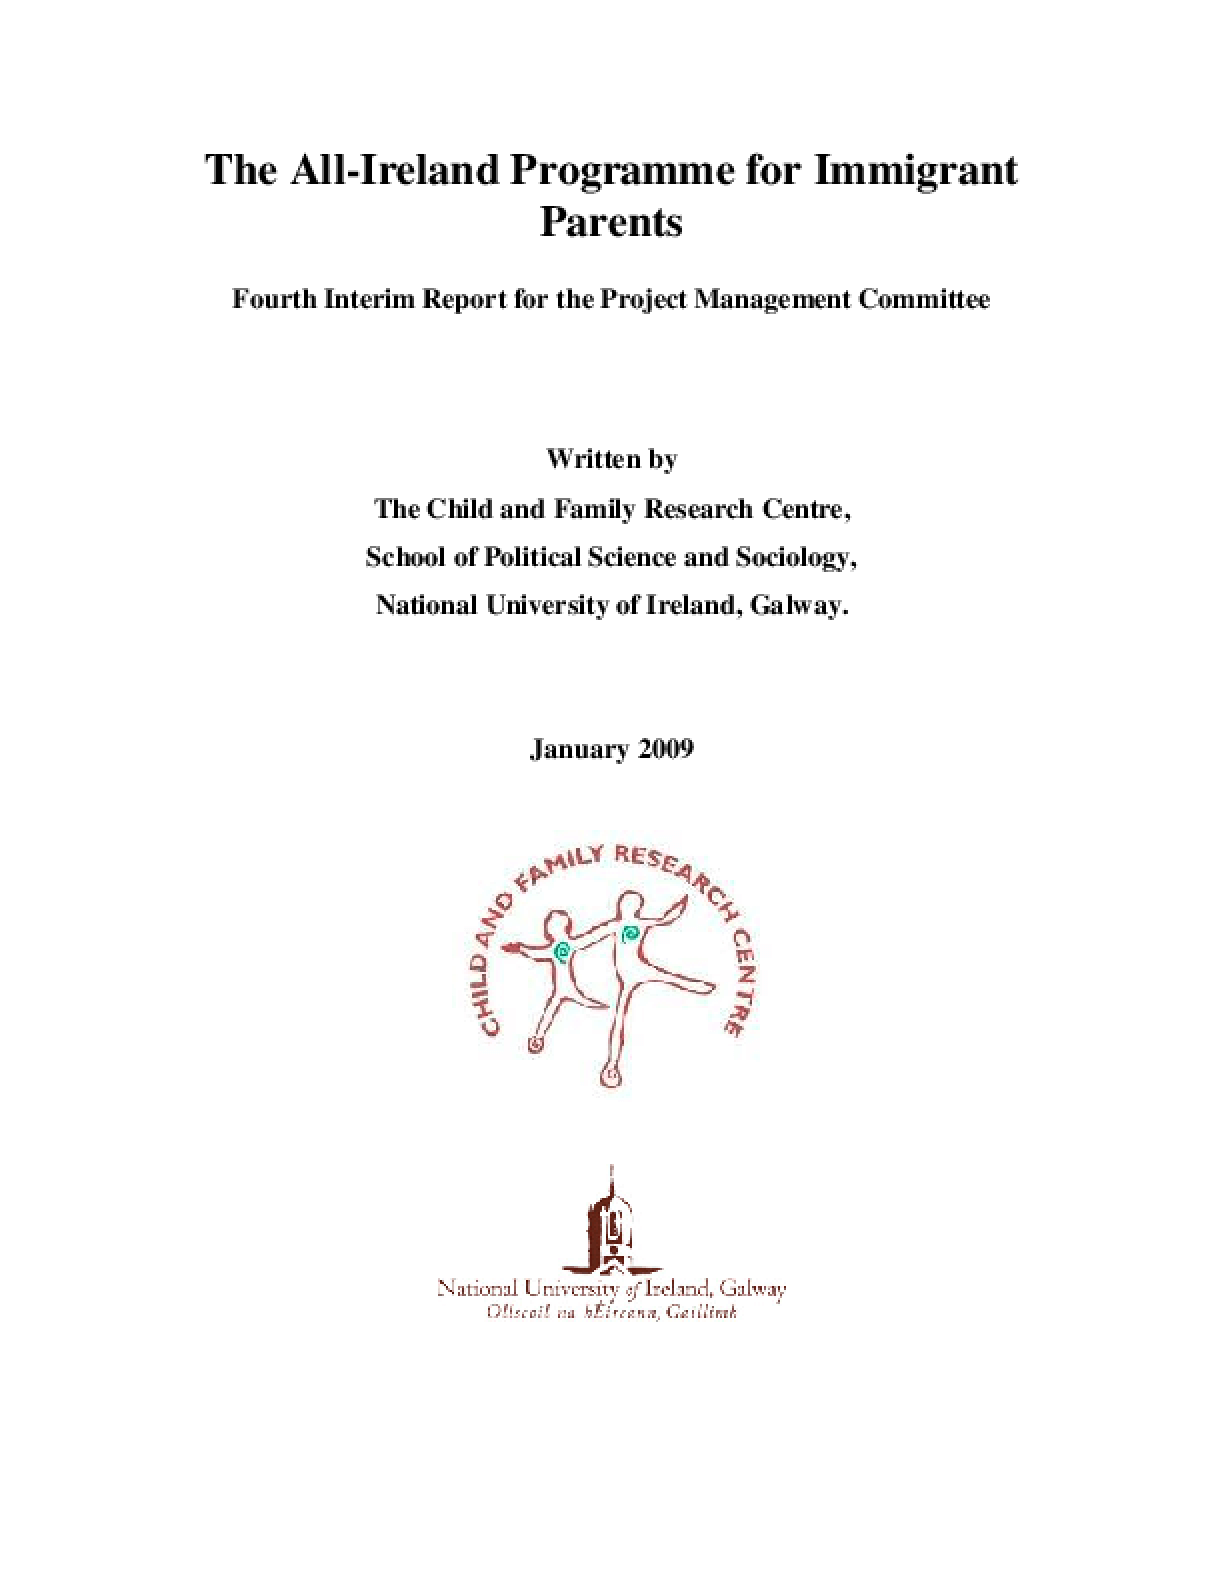 The All-Ireland Programme for Immigrant Parents: Fourth Interim Report for the Project Management Committee